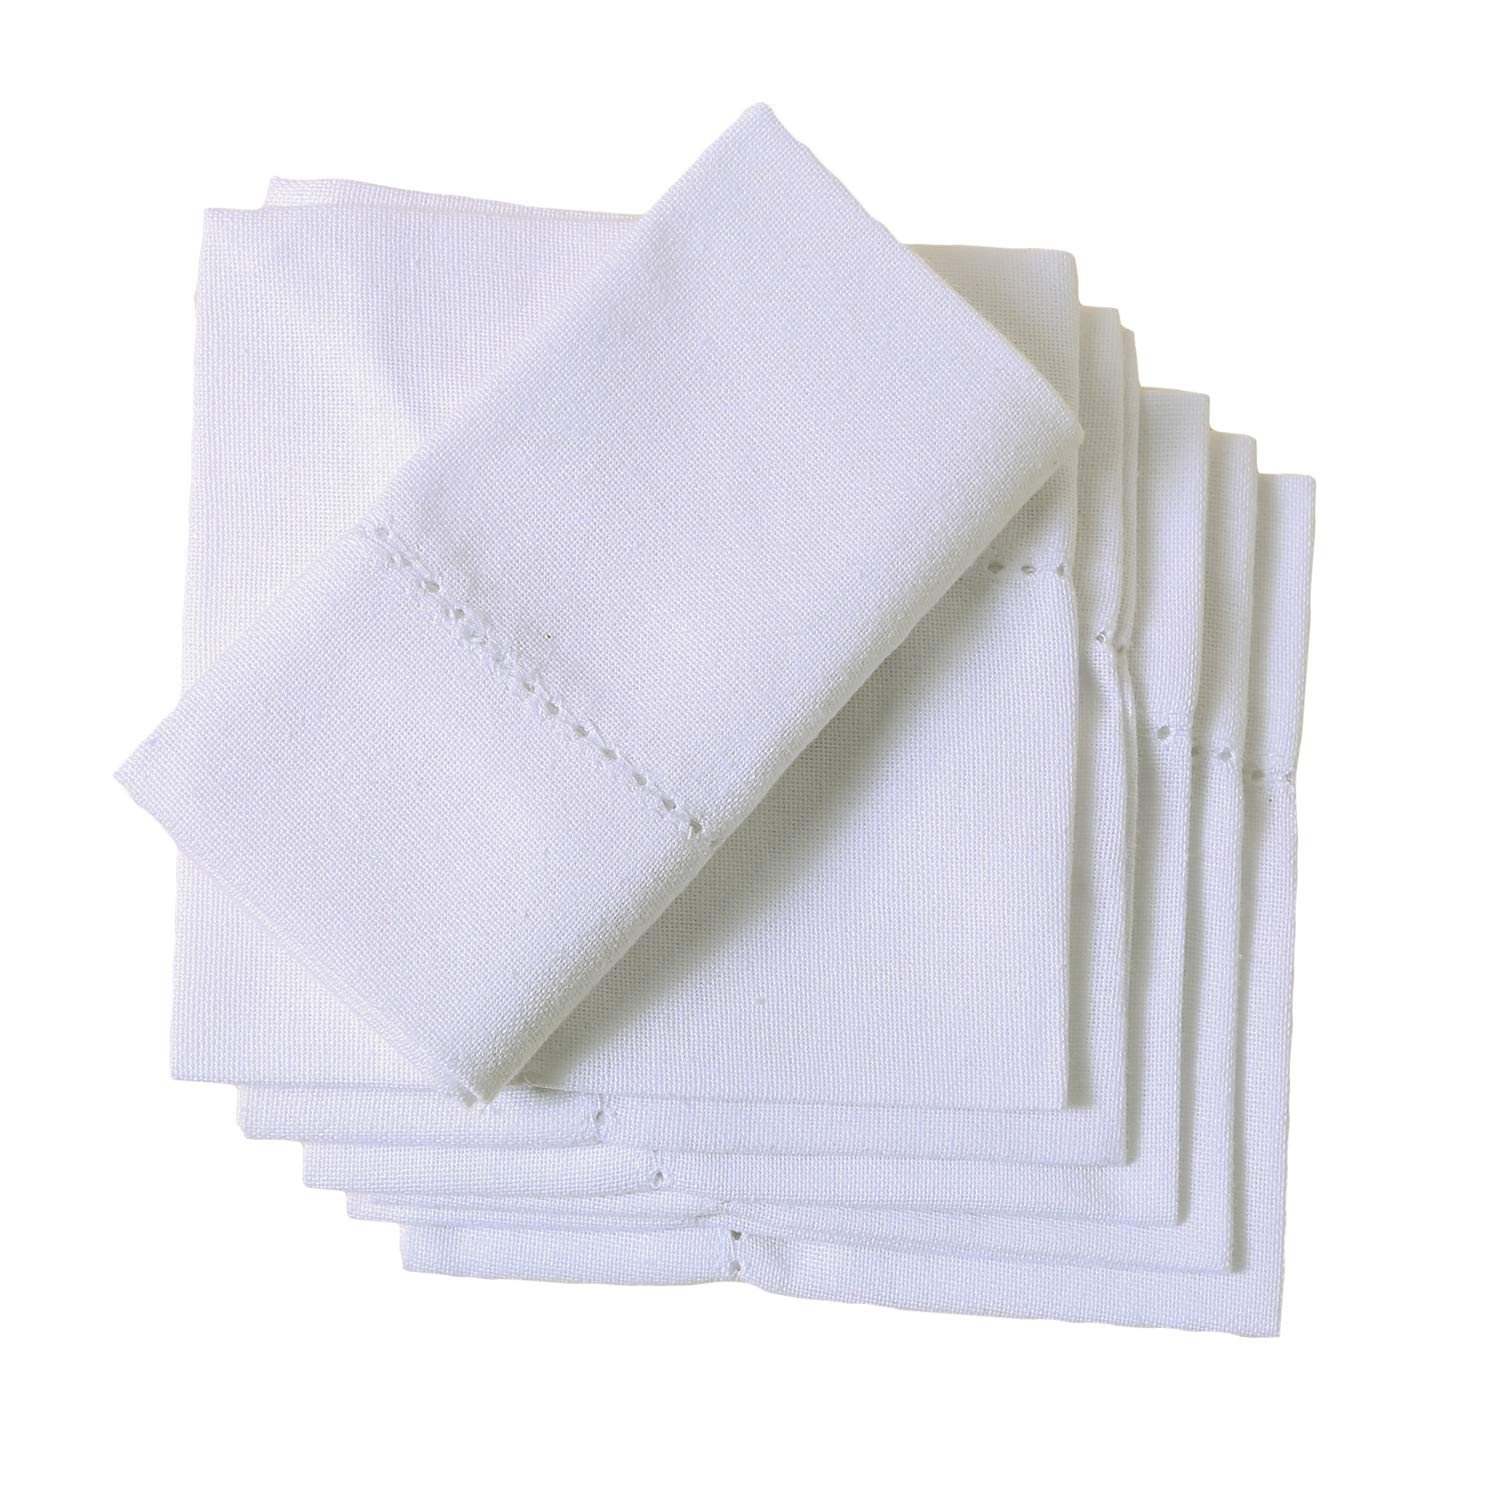 100% Certified Premium Organic Cotton Napkins, 20 x 20 inch Set of 6 White Napkins, Dinner Cloth Napkins for Dinner, Events, Weddings, Tailored with Hemstitched Mitered Corners and a Generous Hem